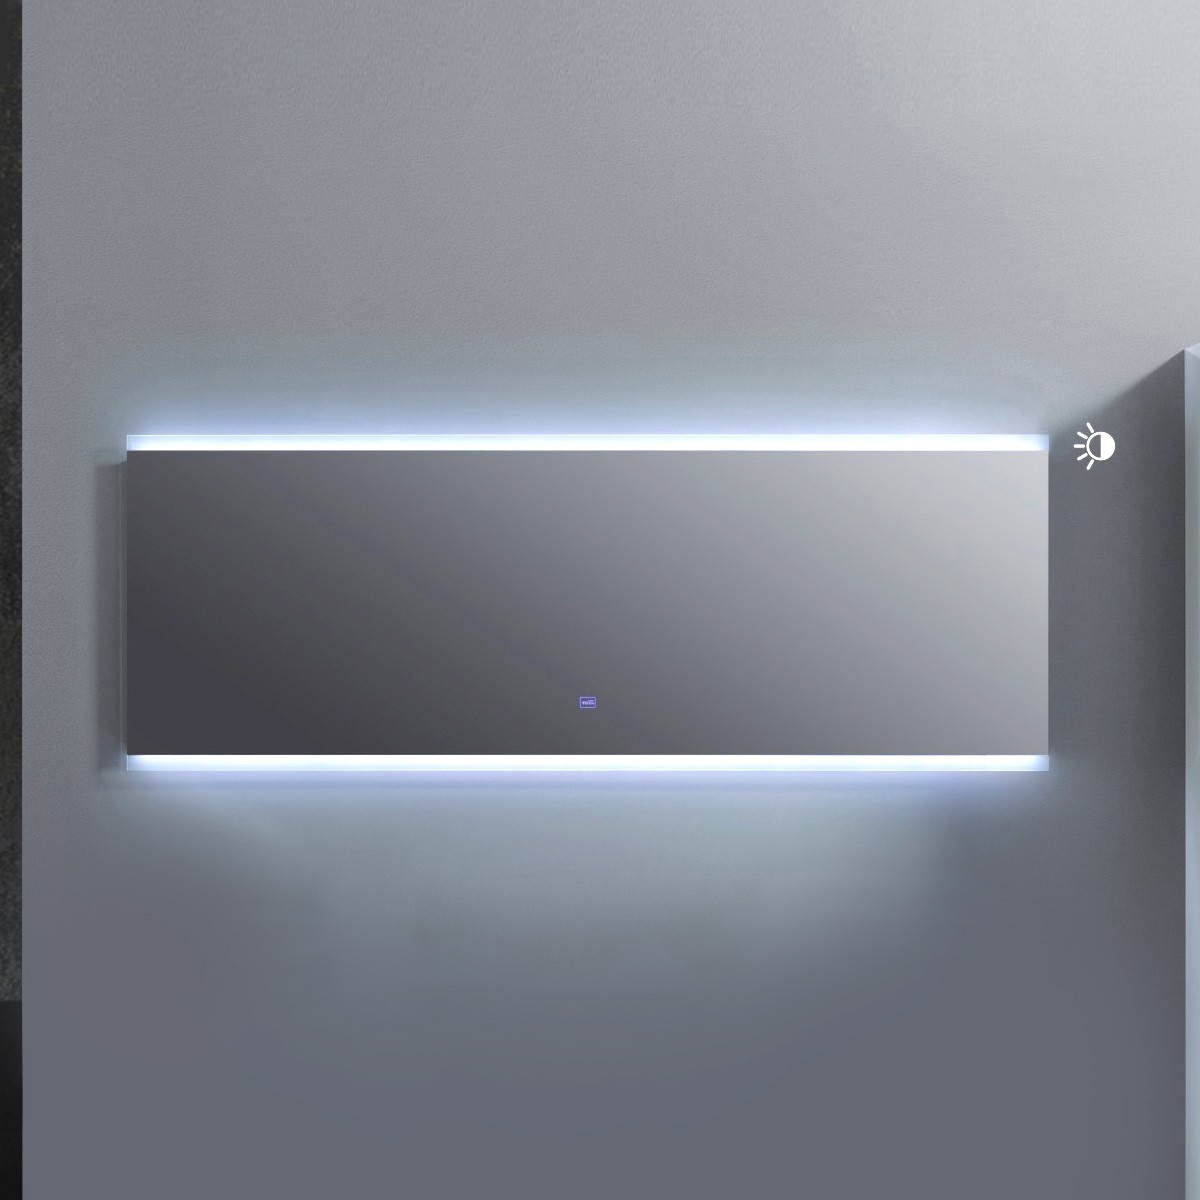 60 x 22 In. LED Mirror with Touch Button (AG1500D-M)